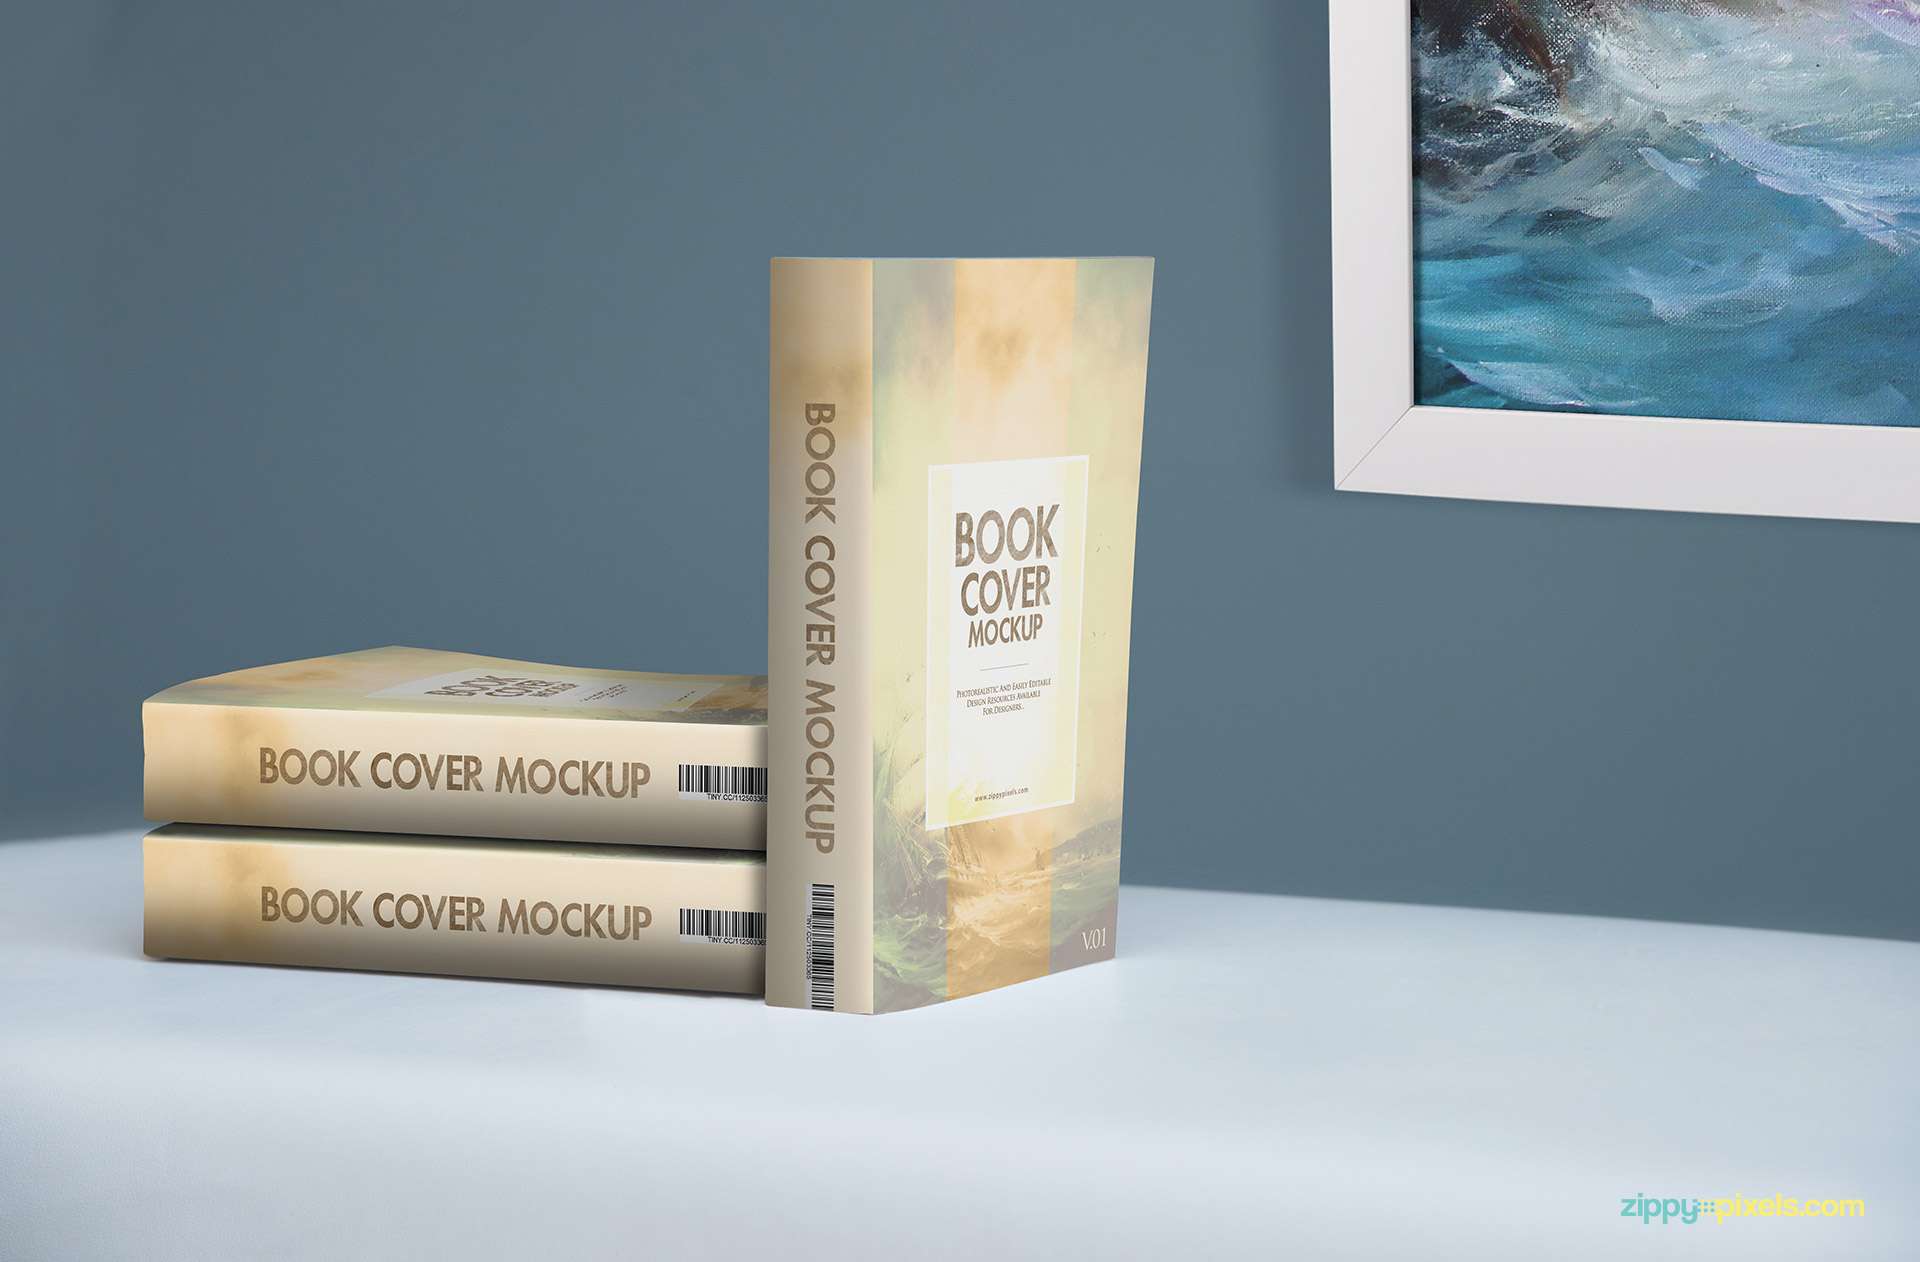 Paperback book PSD mockup for showcasing softcover designs in lying down & stand up position